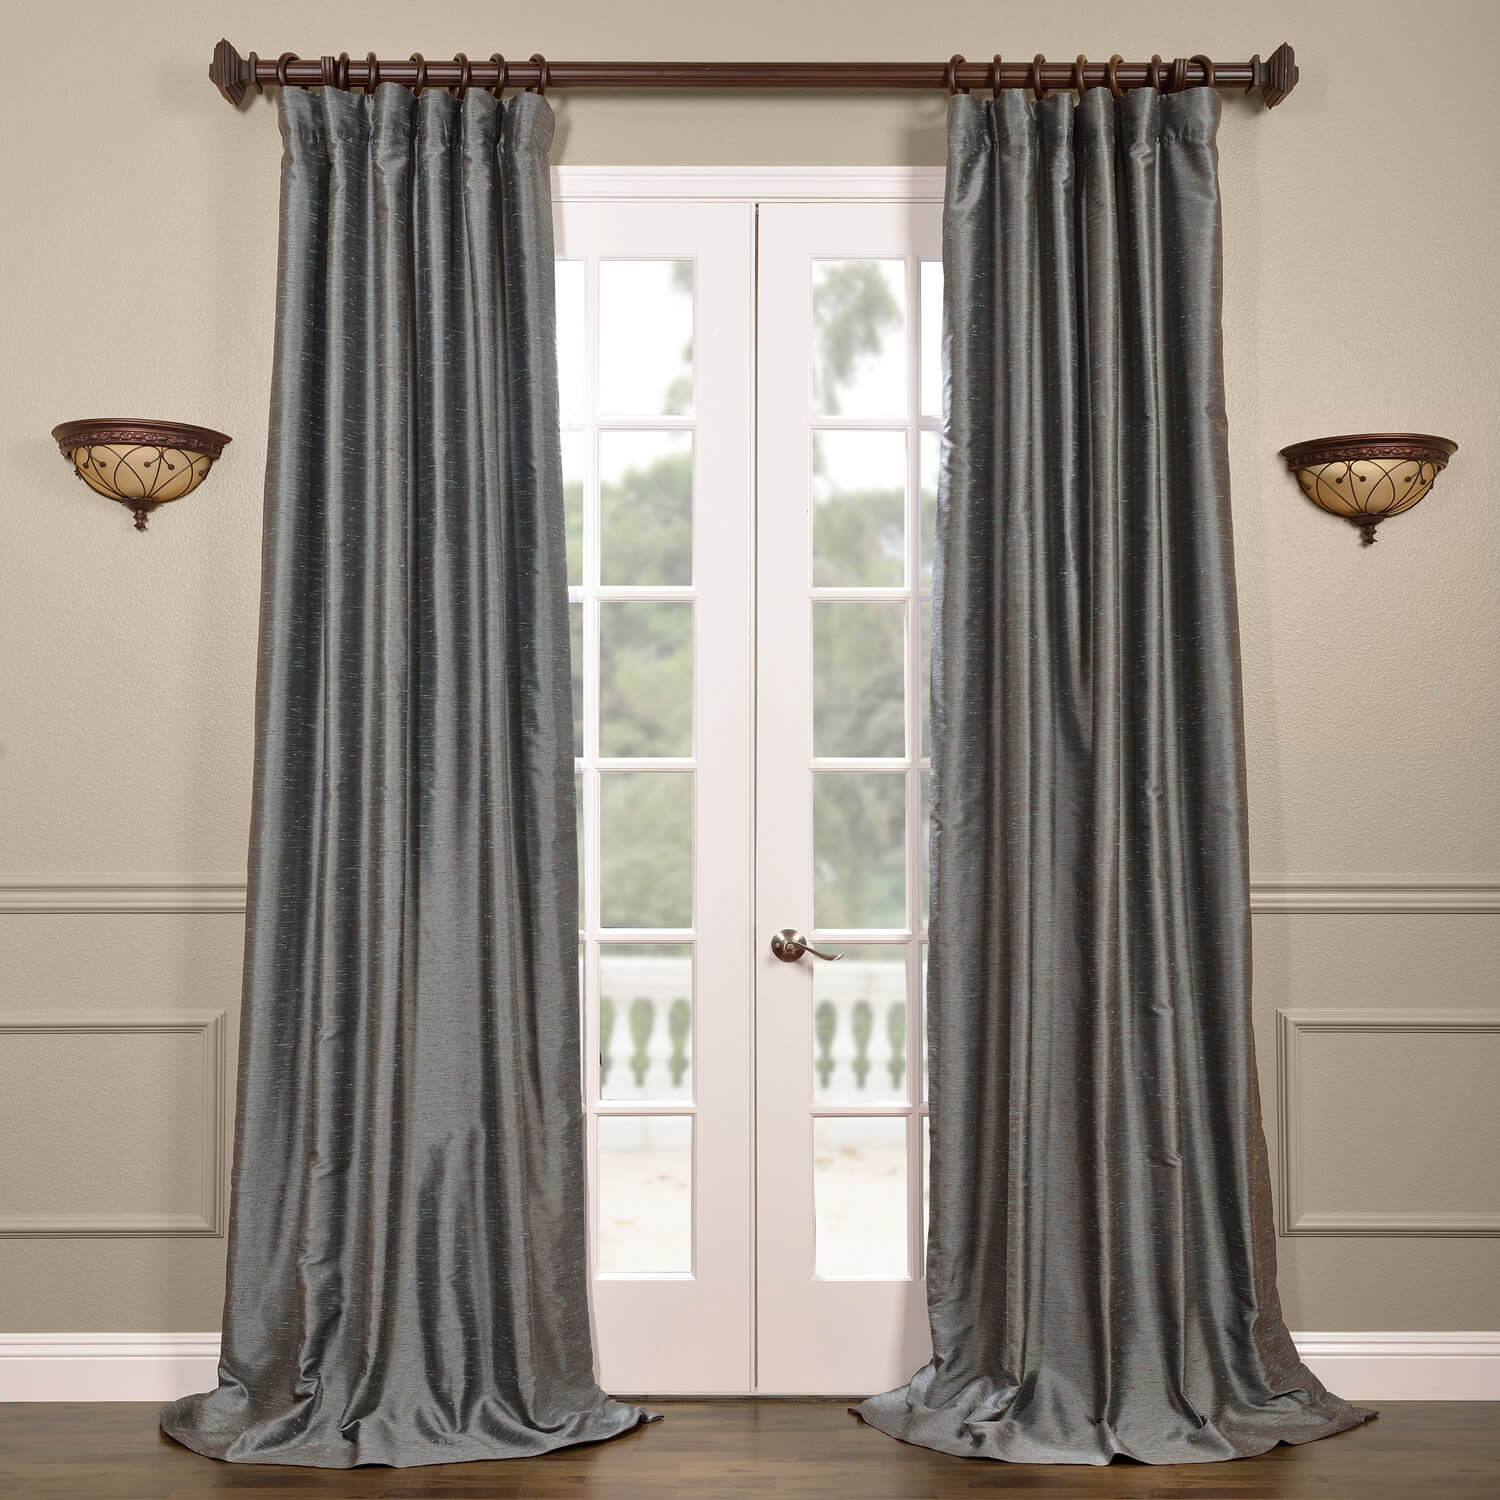 Pacific Storm Yarn Dyed Faux Dupioni Silk Curtain